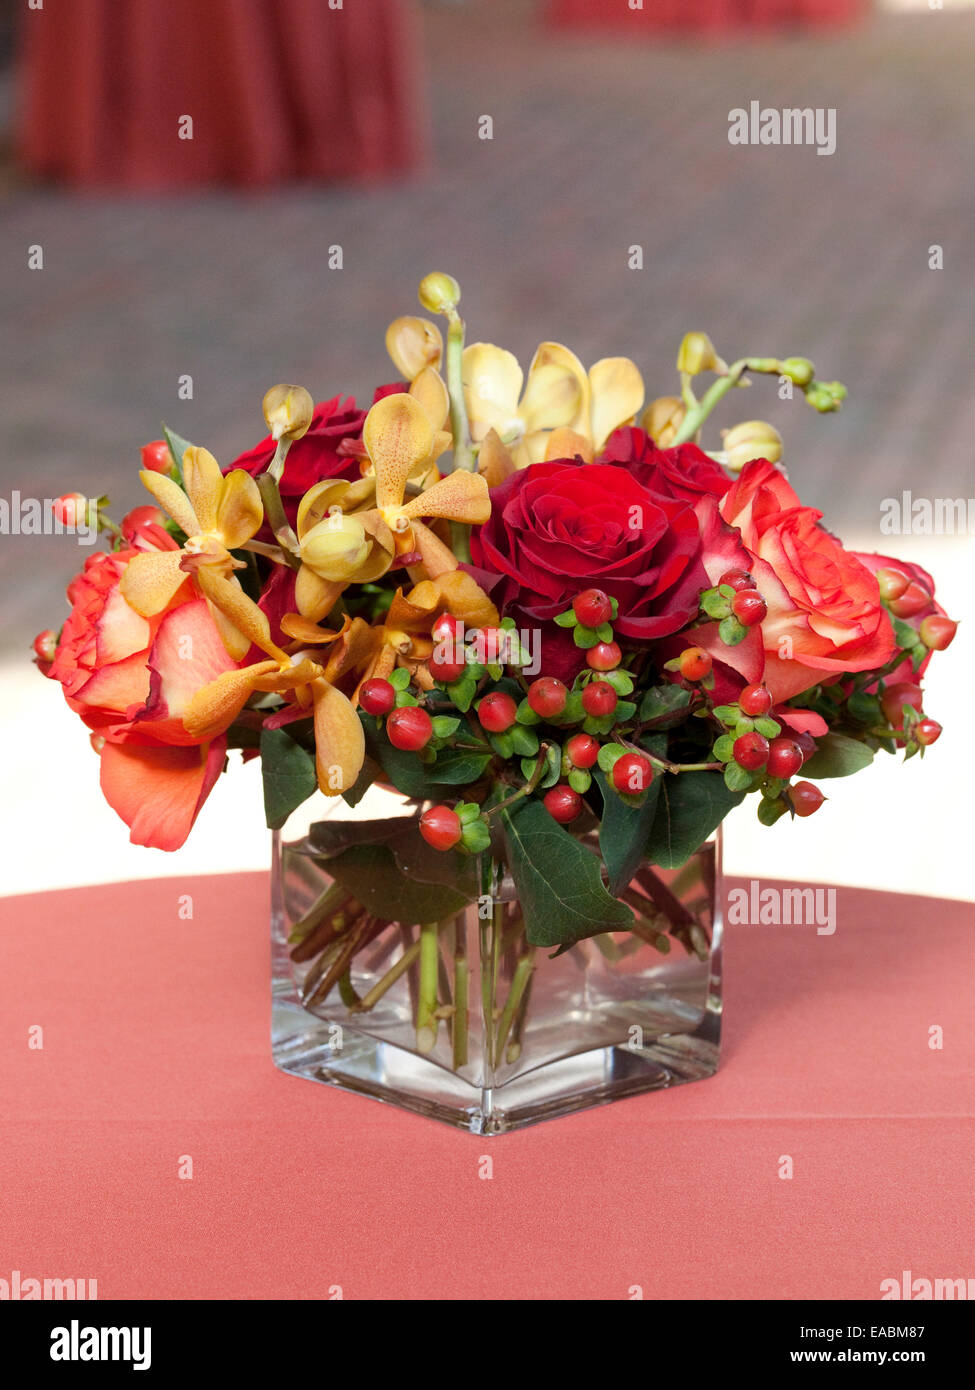 Vase of flowers on table at reception Stock Photo